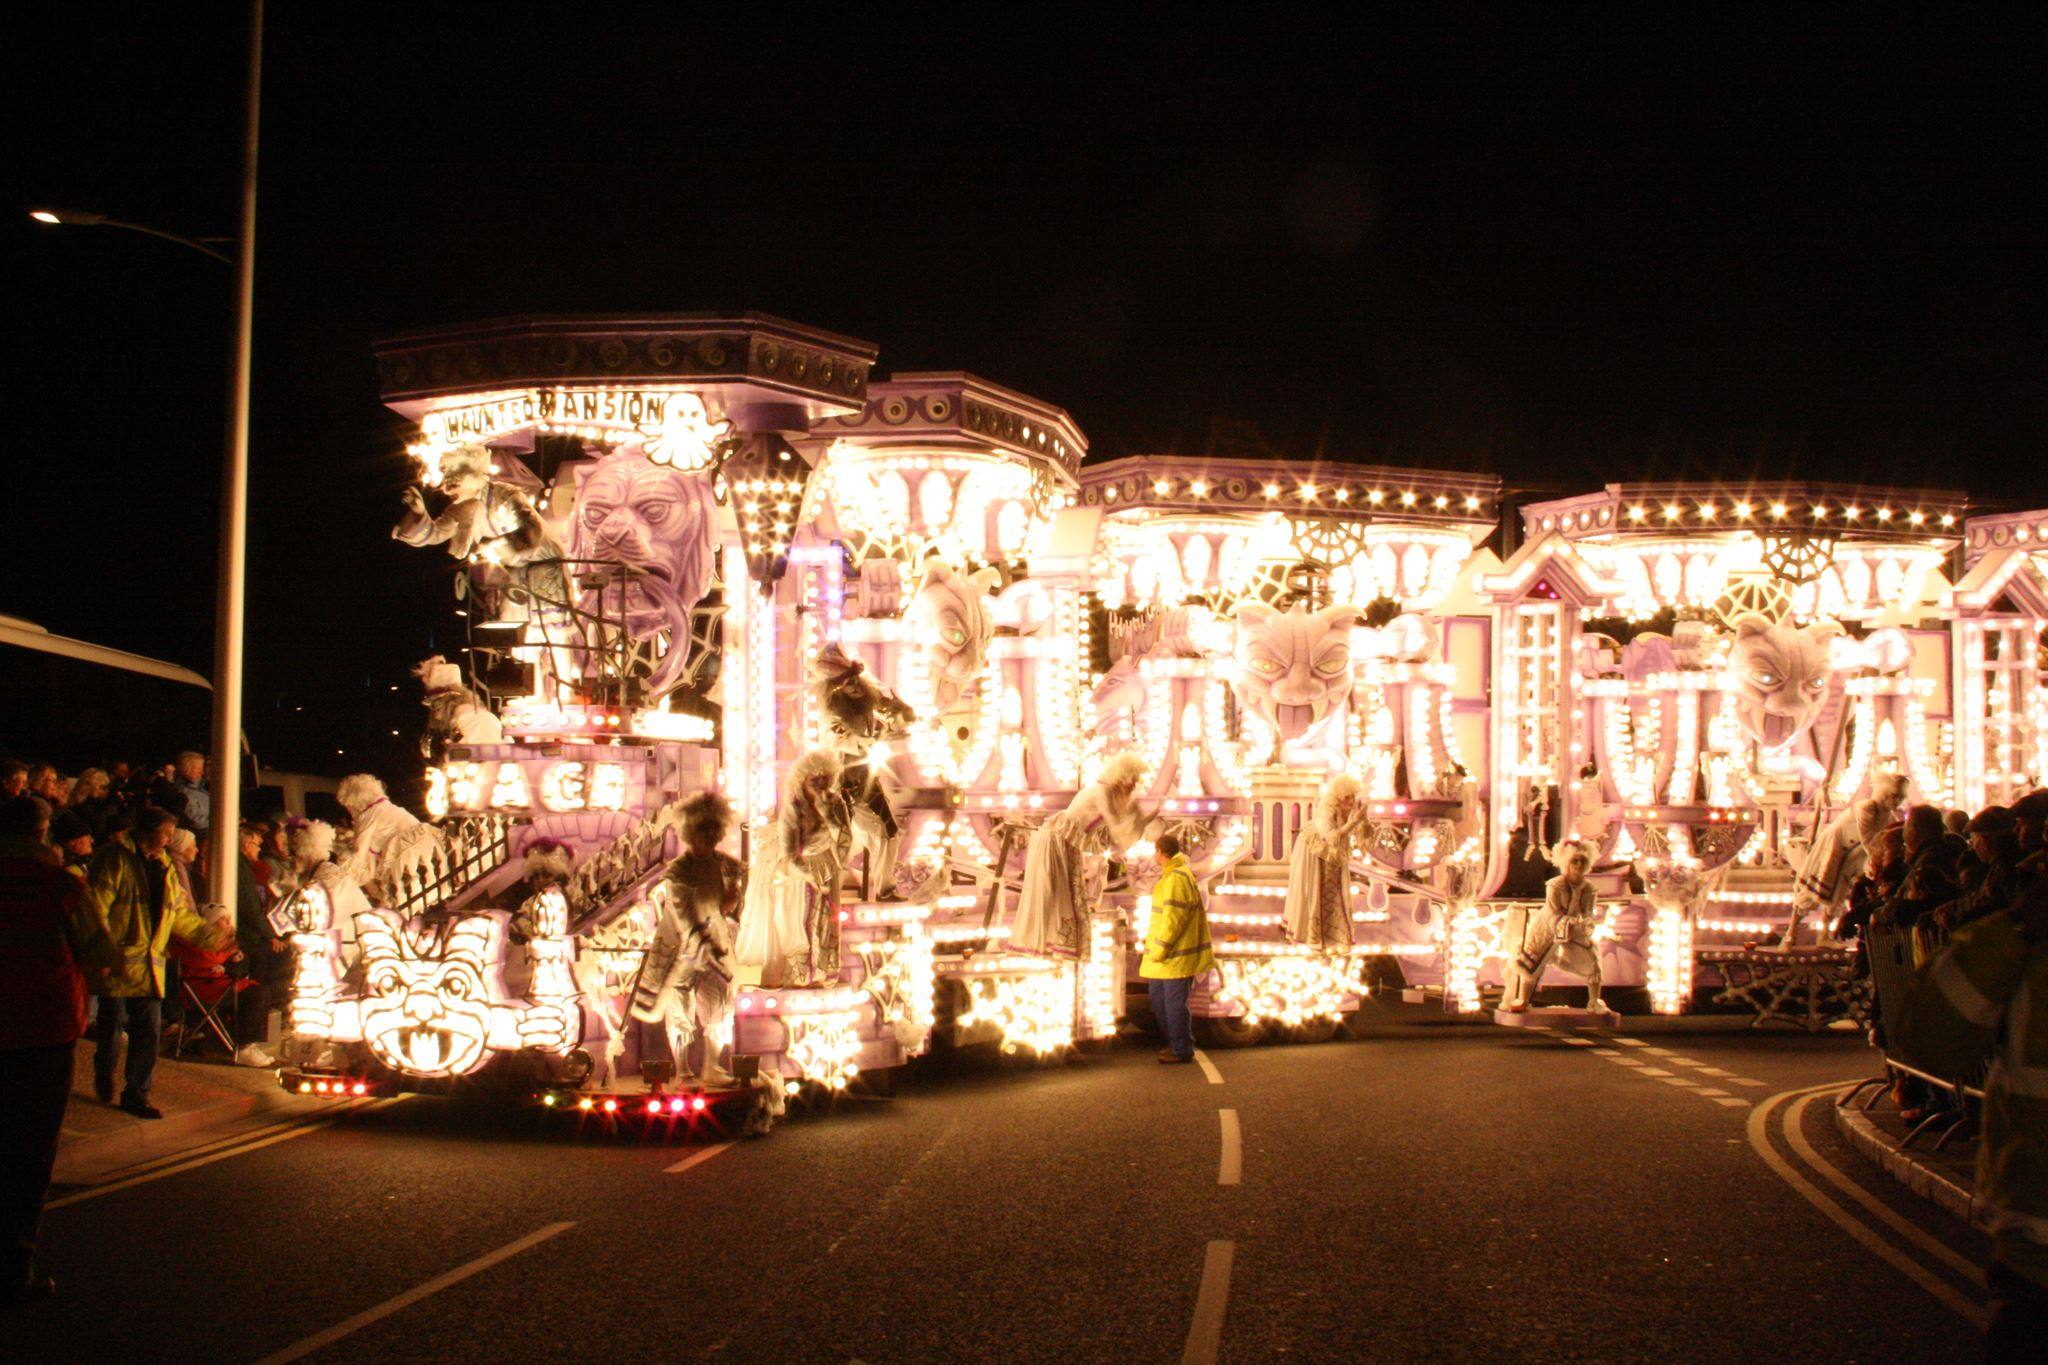 weston super mare carnival with global buddies